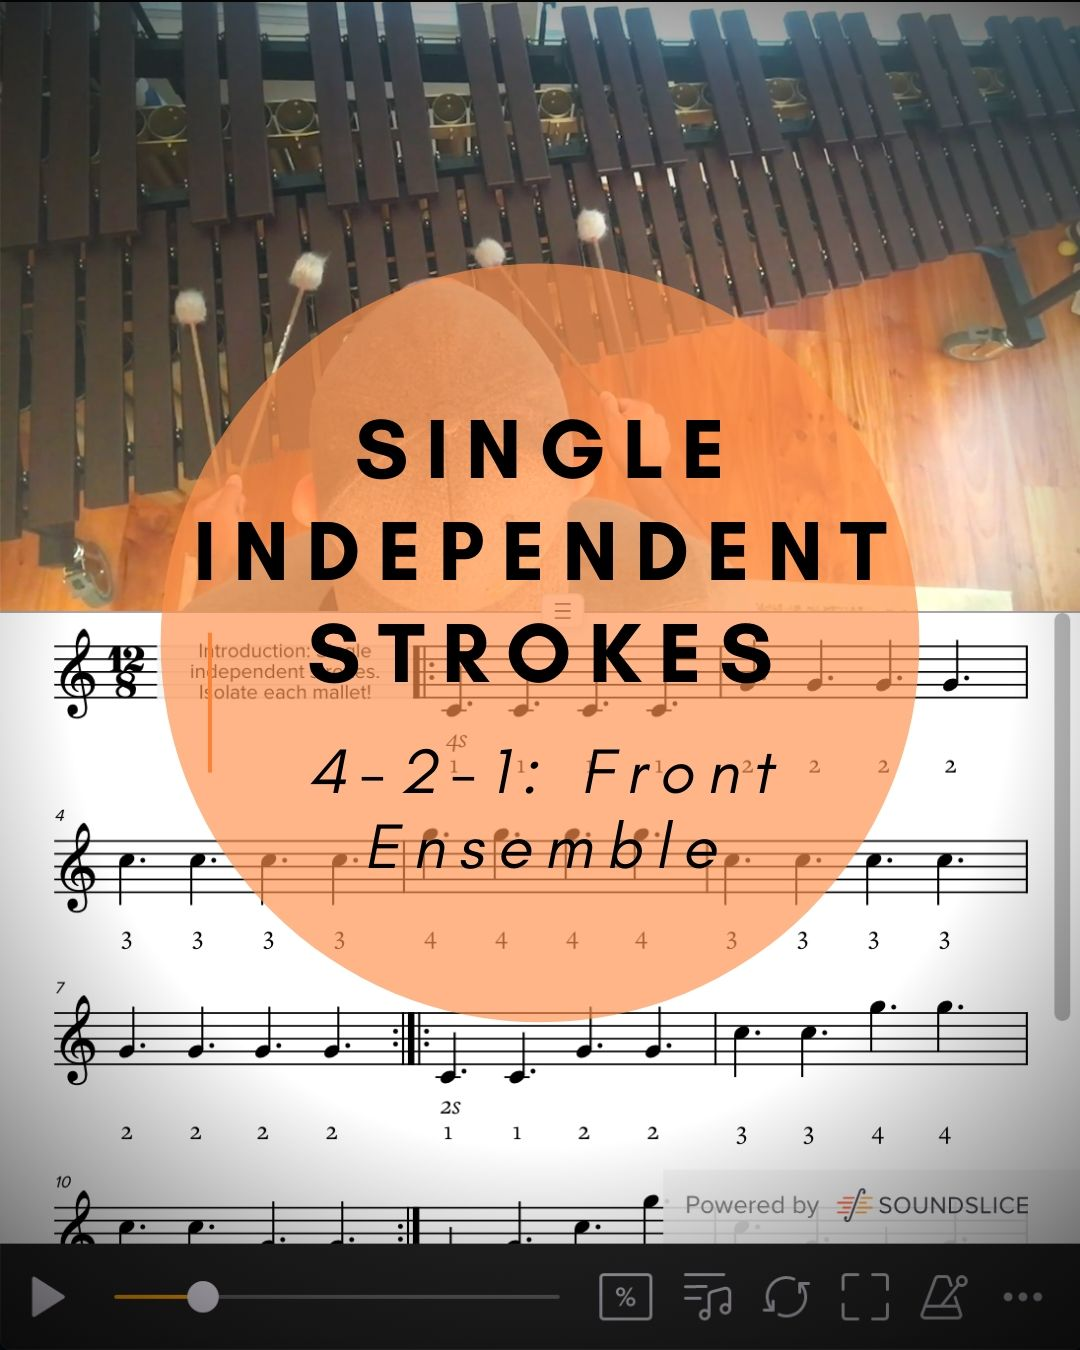 Single Independent Strokes